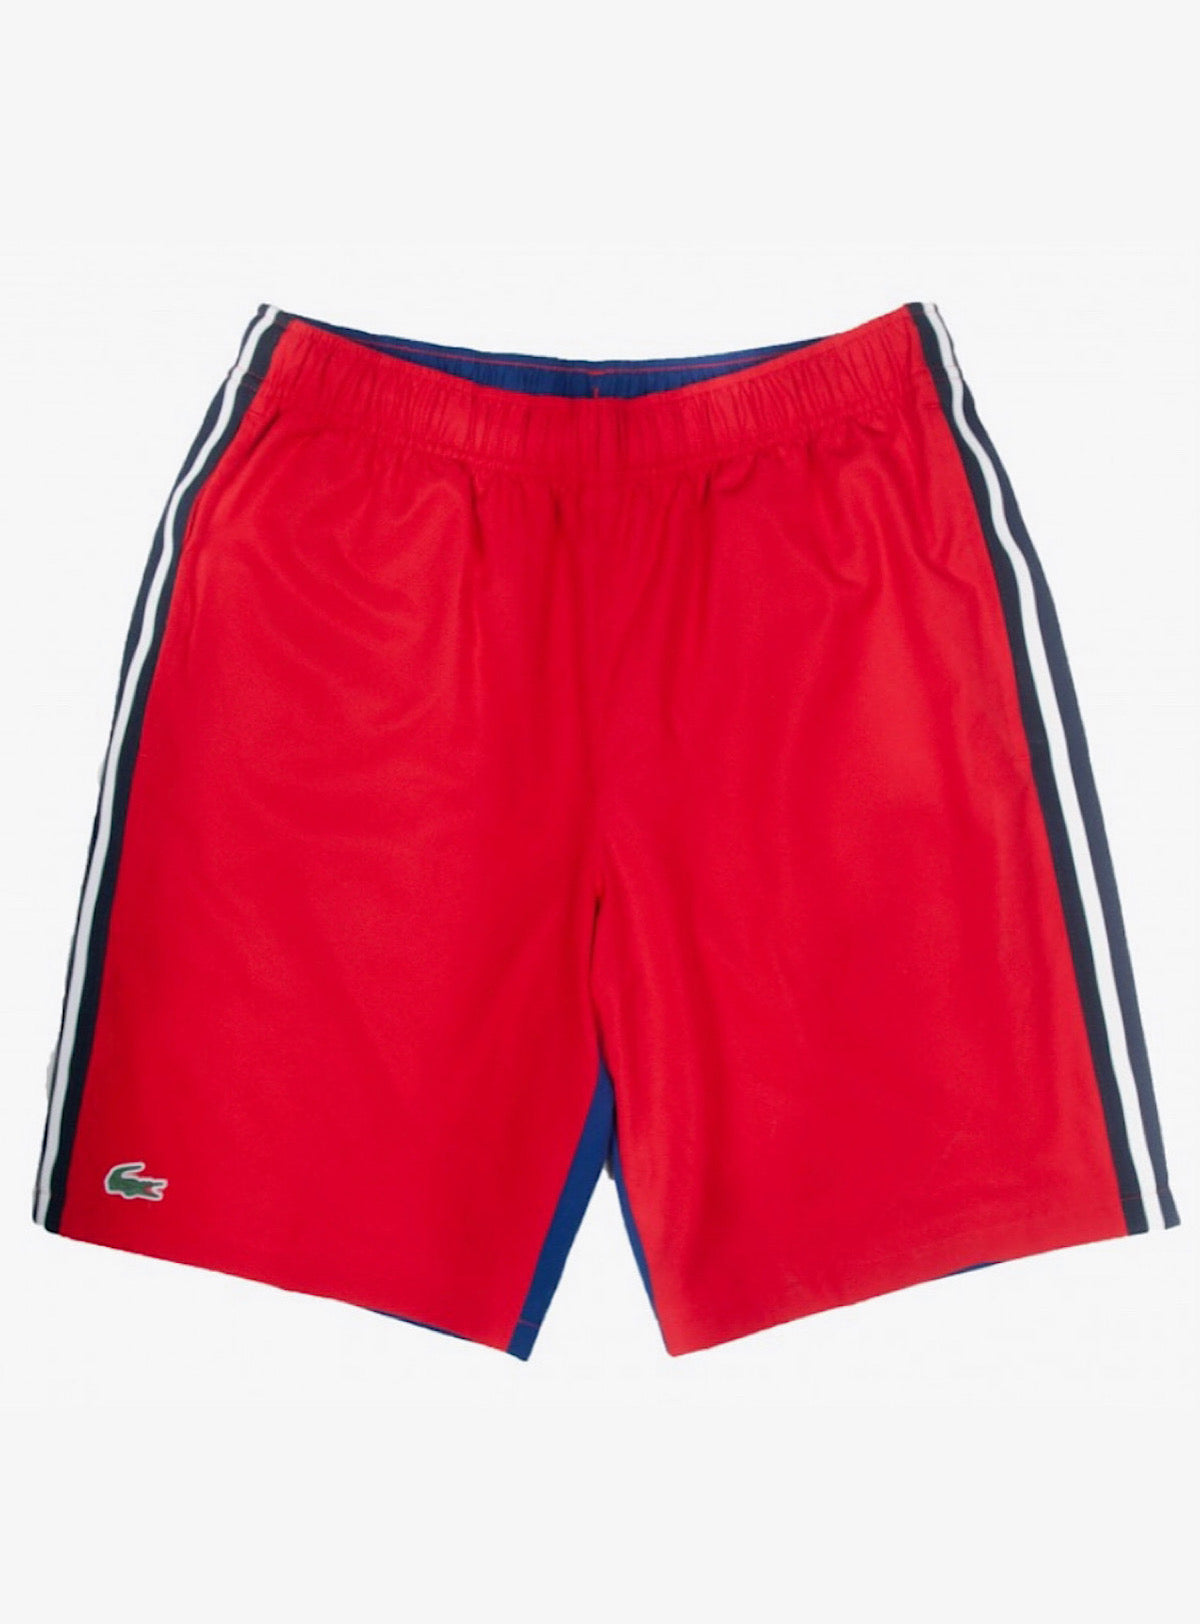 Lacoste Shorts - Sport Contrast Band - Red/Blue - GH2105-51